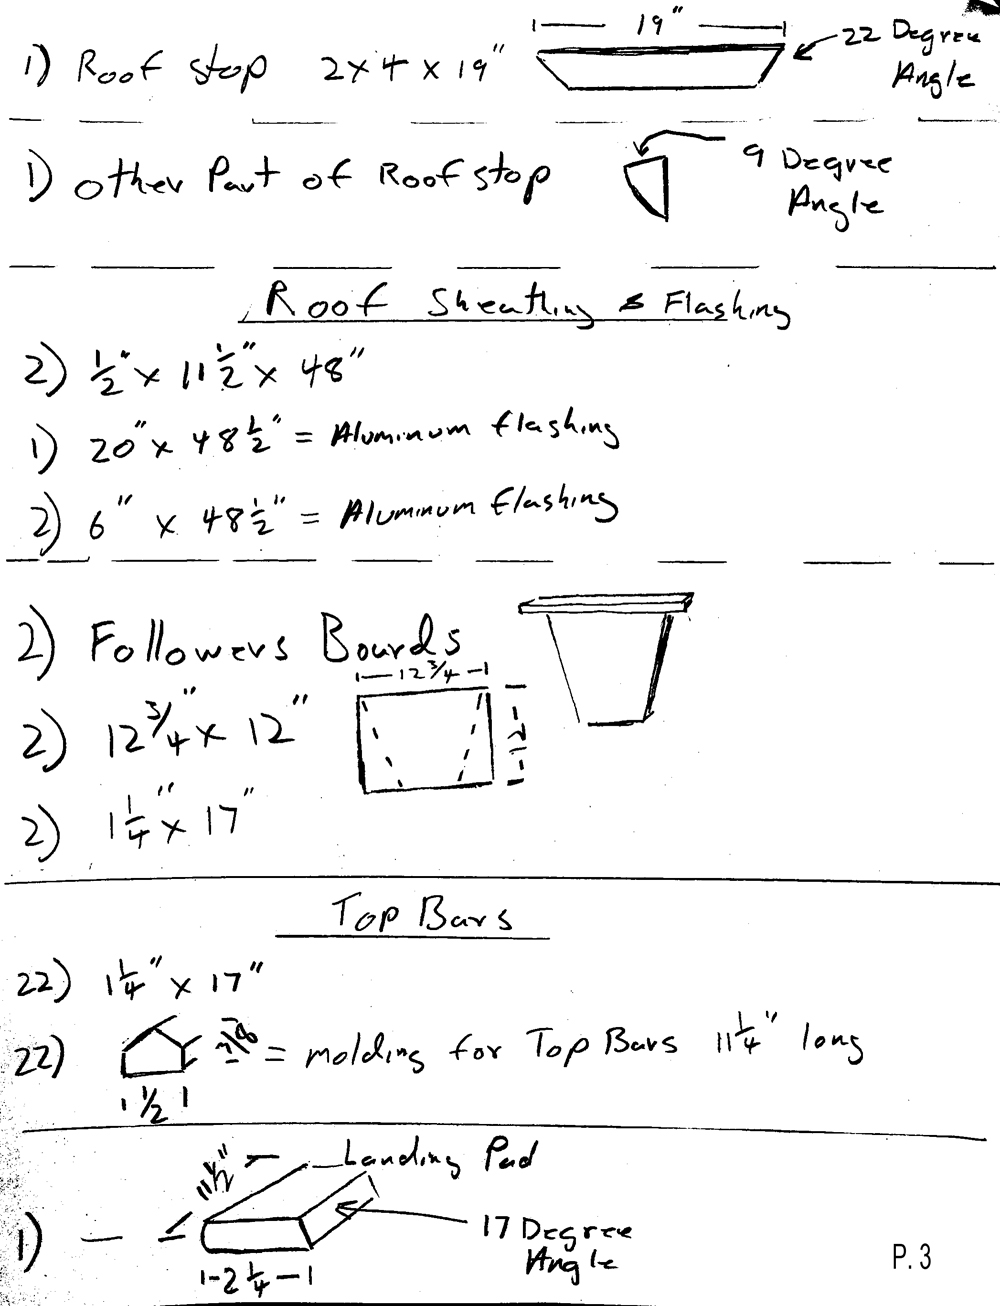 How to Build a Top Bar Beehive - Free Design Plans ...